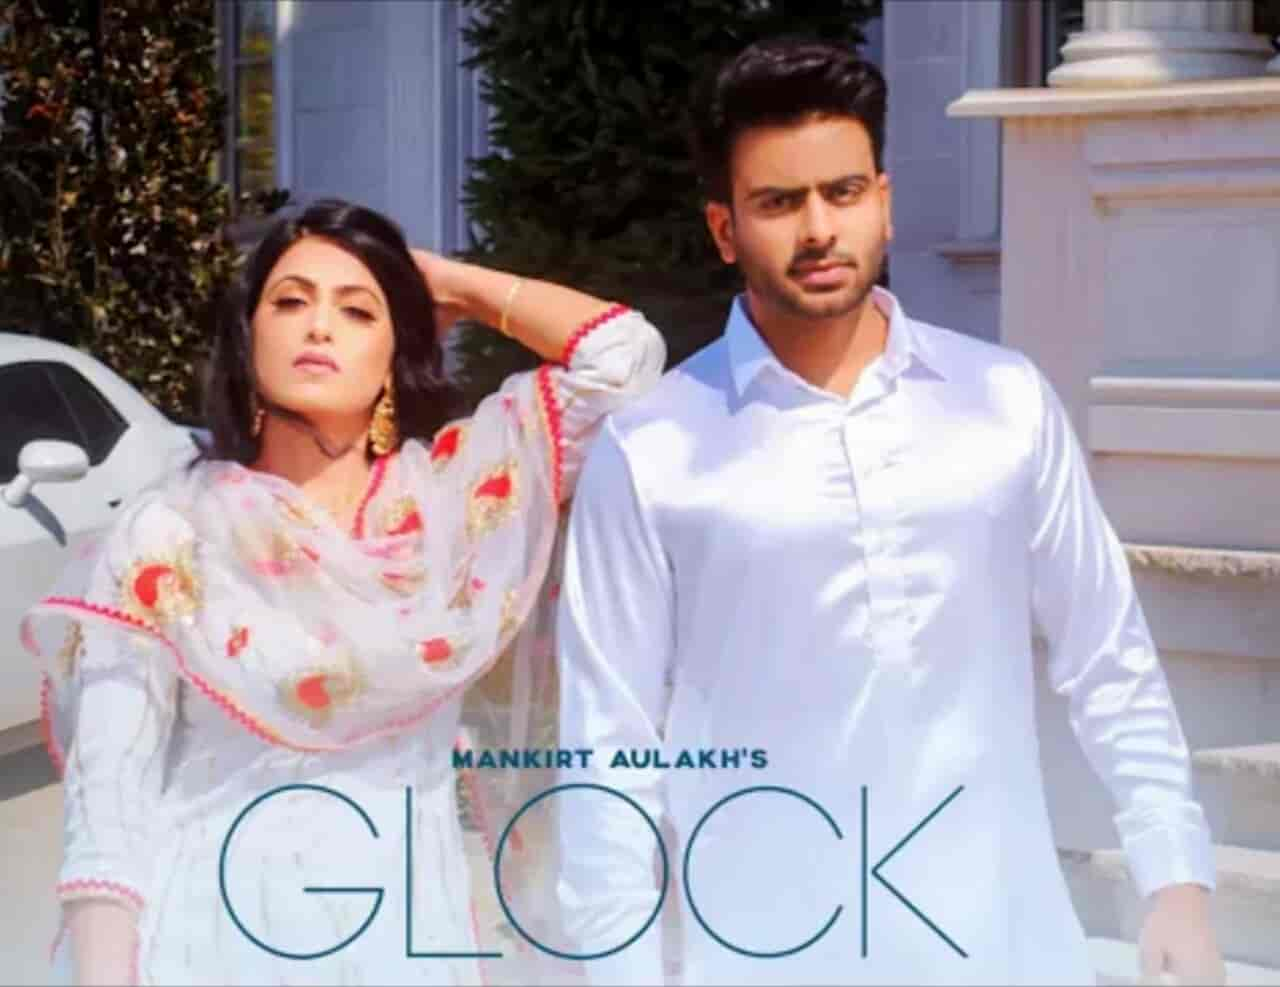 Glock Song Images By Mankirt Aulakh